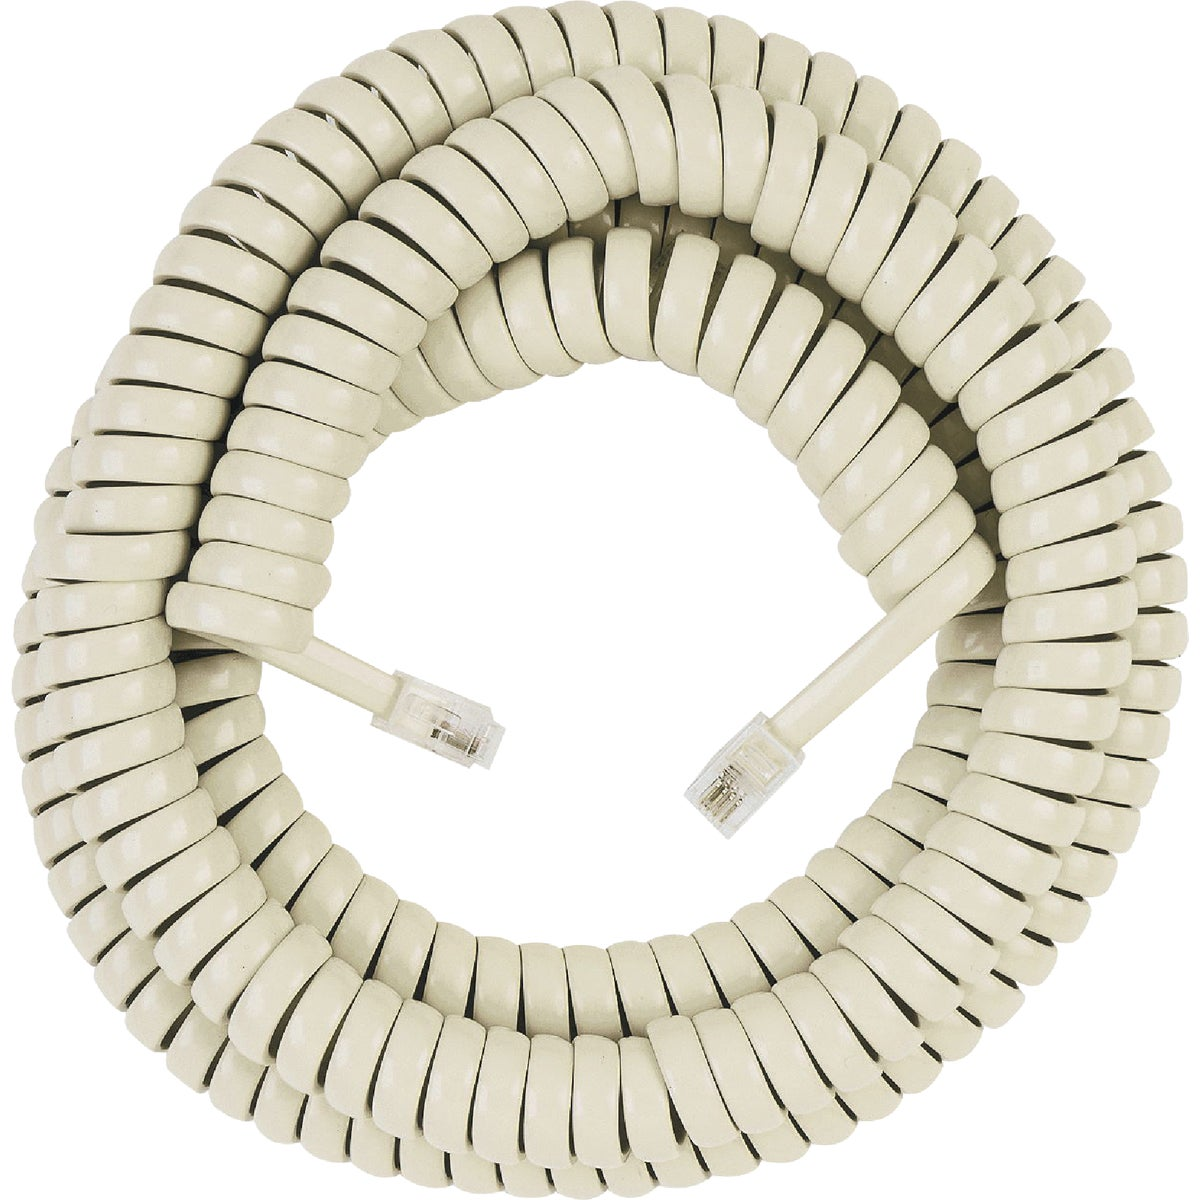 25' ALMD PHONE CORD - TP282ARV by Audiovox Accessories